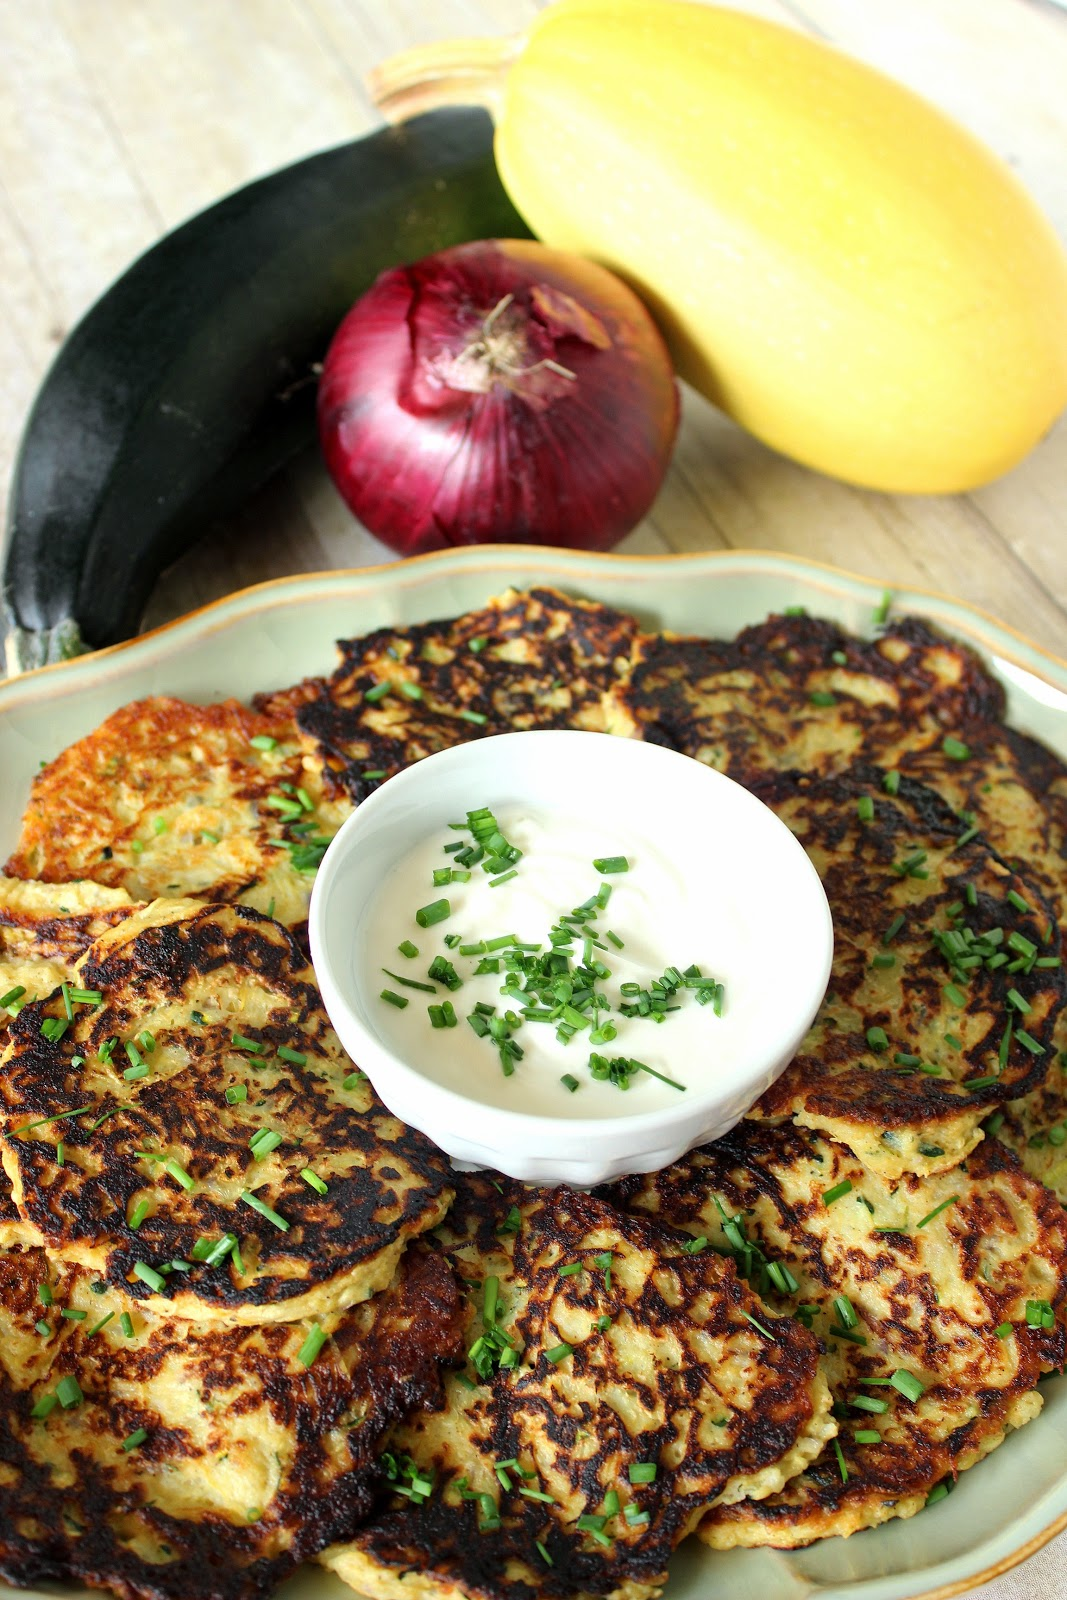 Or how about this one for ZUCCHINI AND SWEET POTATO FRITTERS: